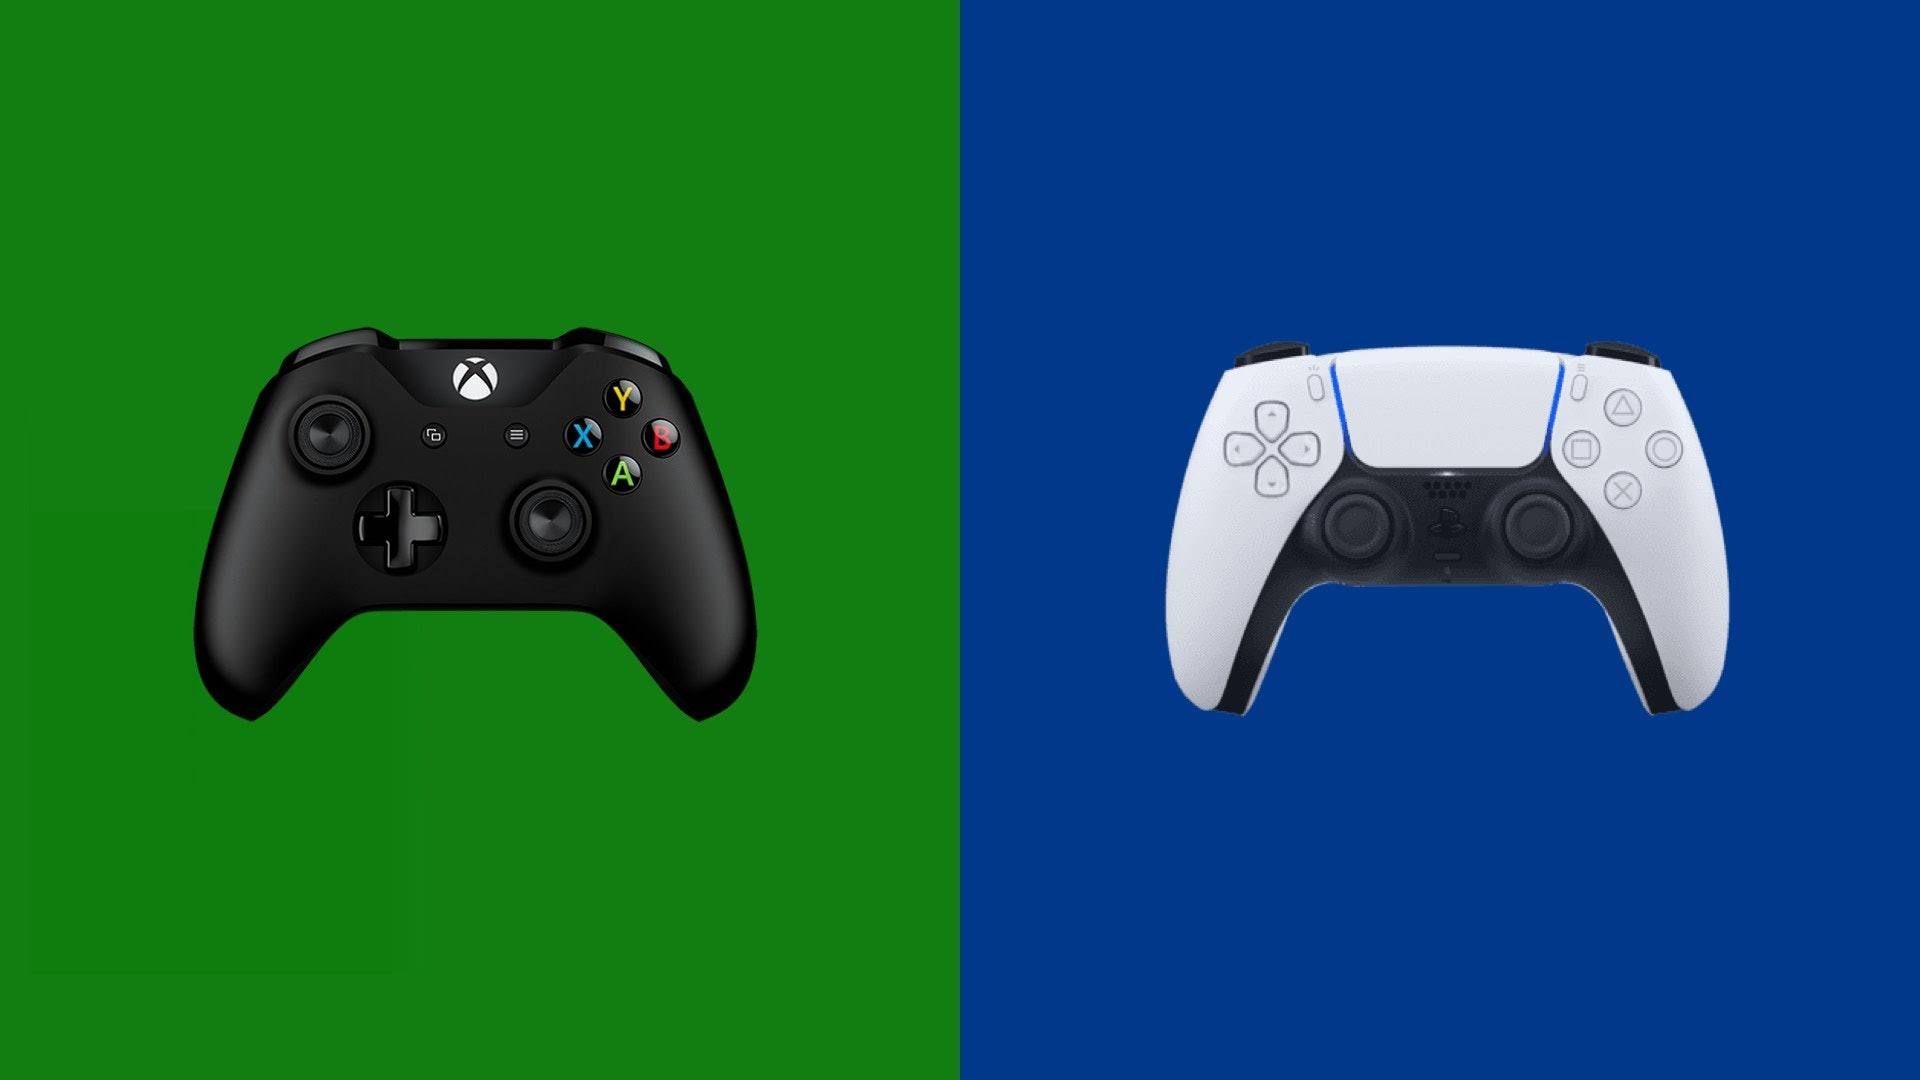 Ps5 Vs Xbox Series X 3 Reasons You Should Care About Backward Compatibility